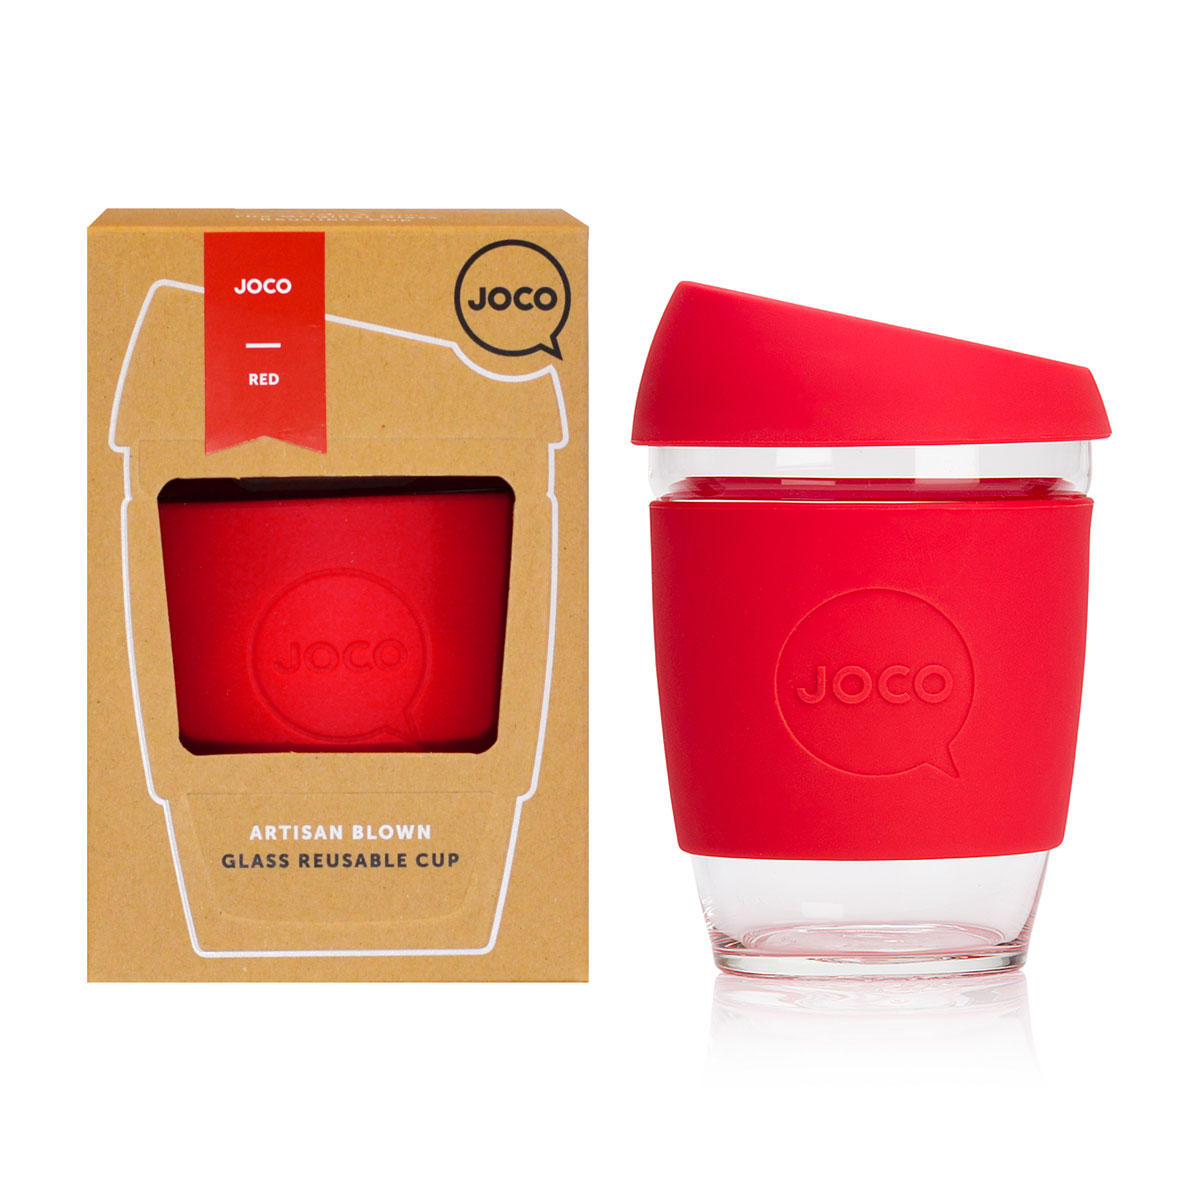 JOCO Cup - 12oz Red - The Original Reusable Glass Coffee Cup